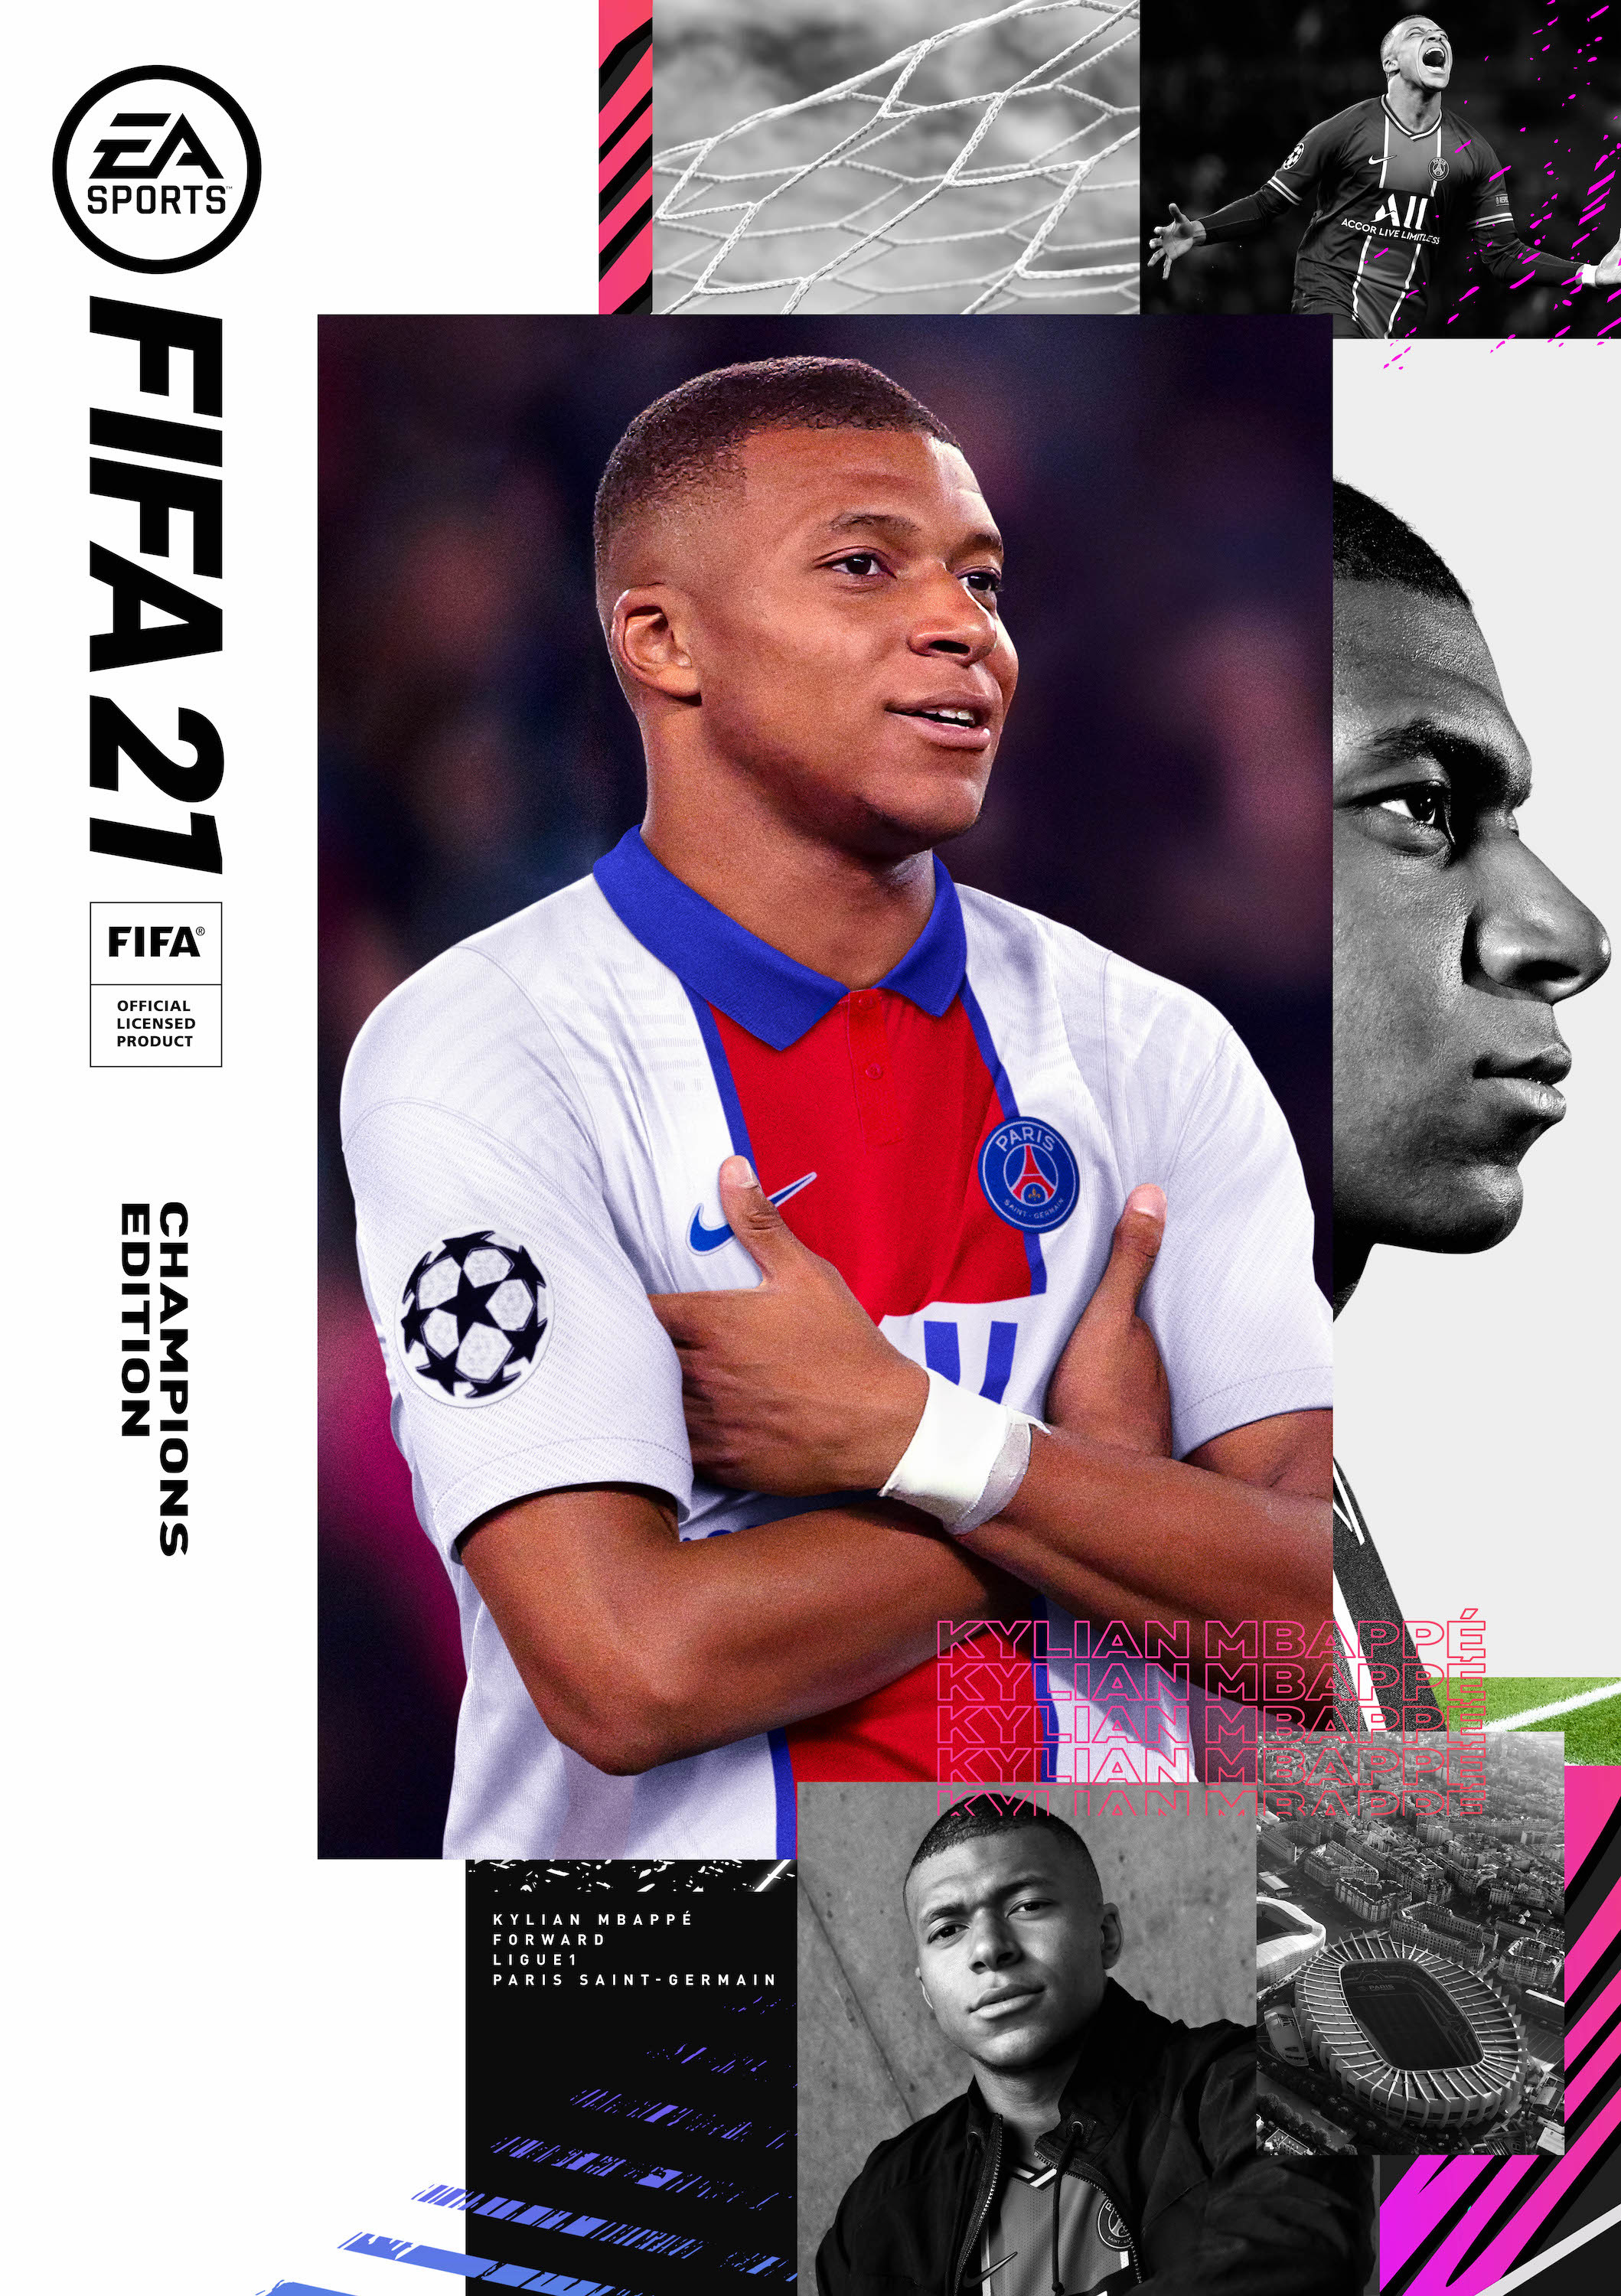 Mbappè is the cover star of FIFA 21